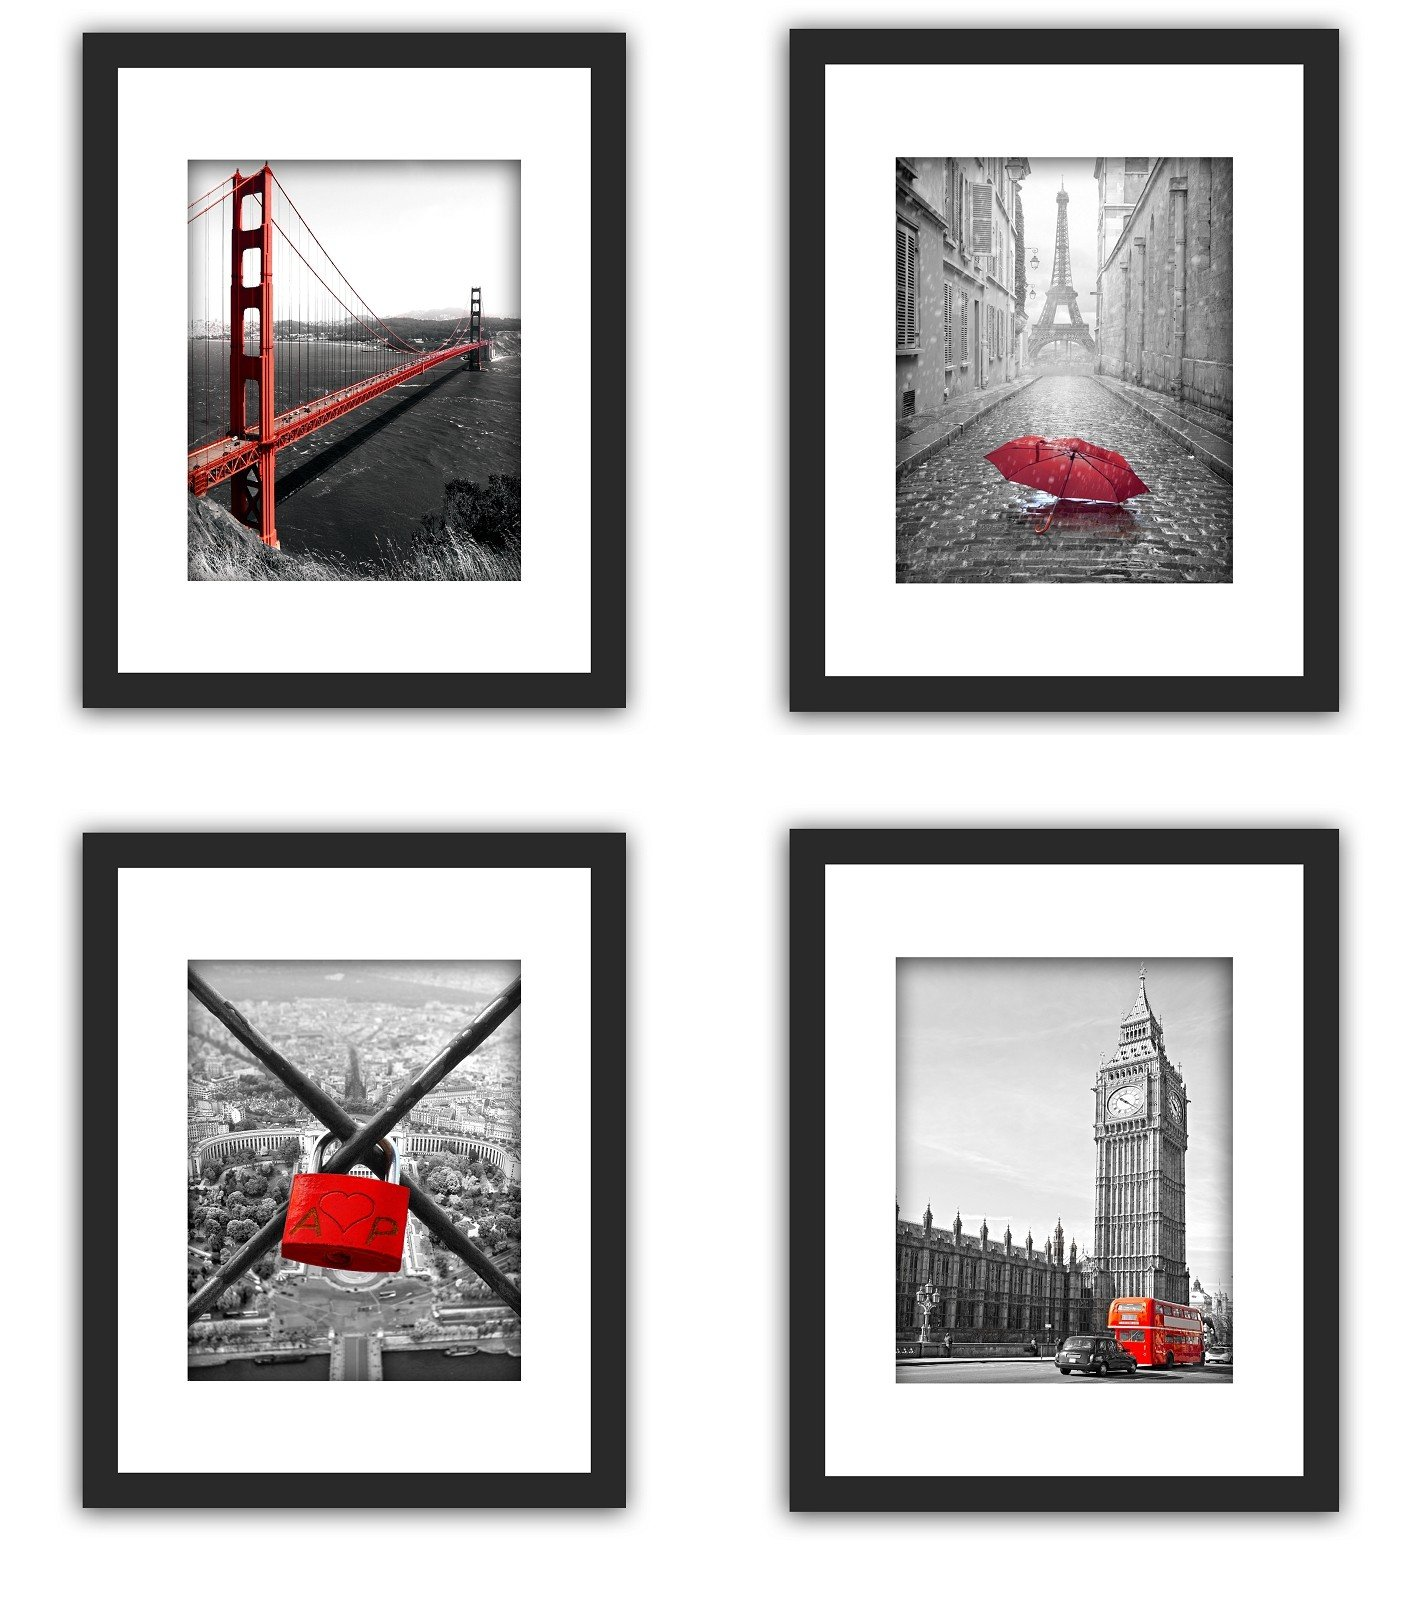 SmartWallStation 4Pcs 1Pcs 11x14 Tempered Glass Wood Frame Black White, with 3X Mat Fit 8x10 5x7, 2 Holes 4x6 inch Family Kid Photo, Wall Horizontal Office Sea Beach Flower (9 Set Pictures) (1) by SmartWallStation